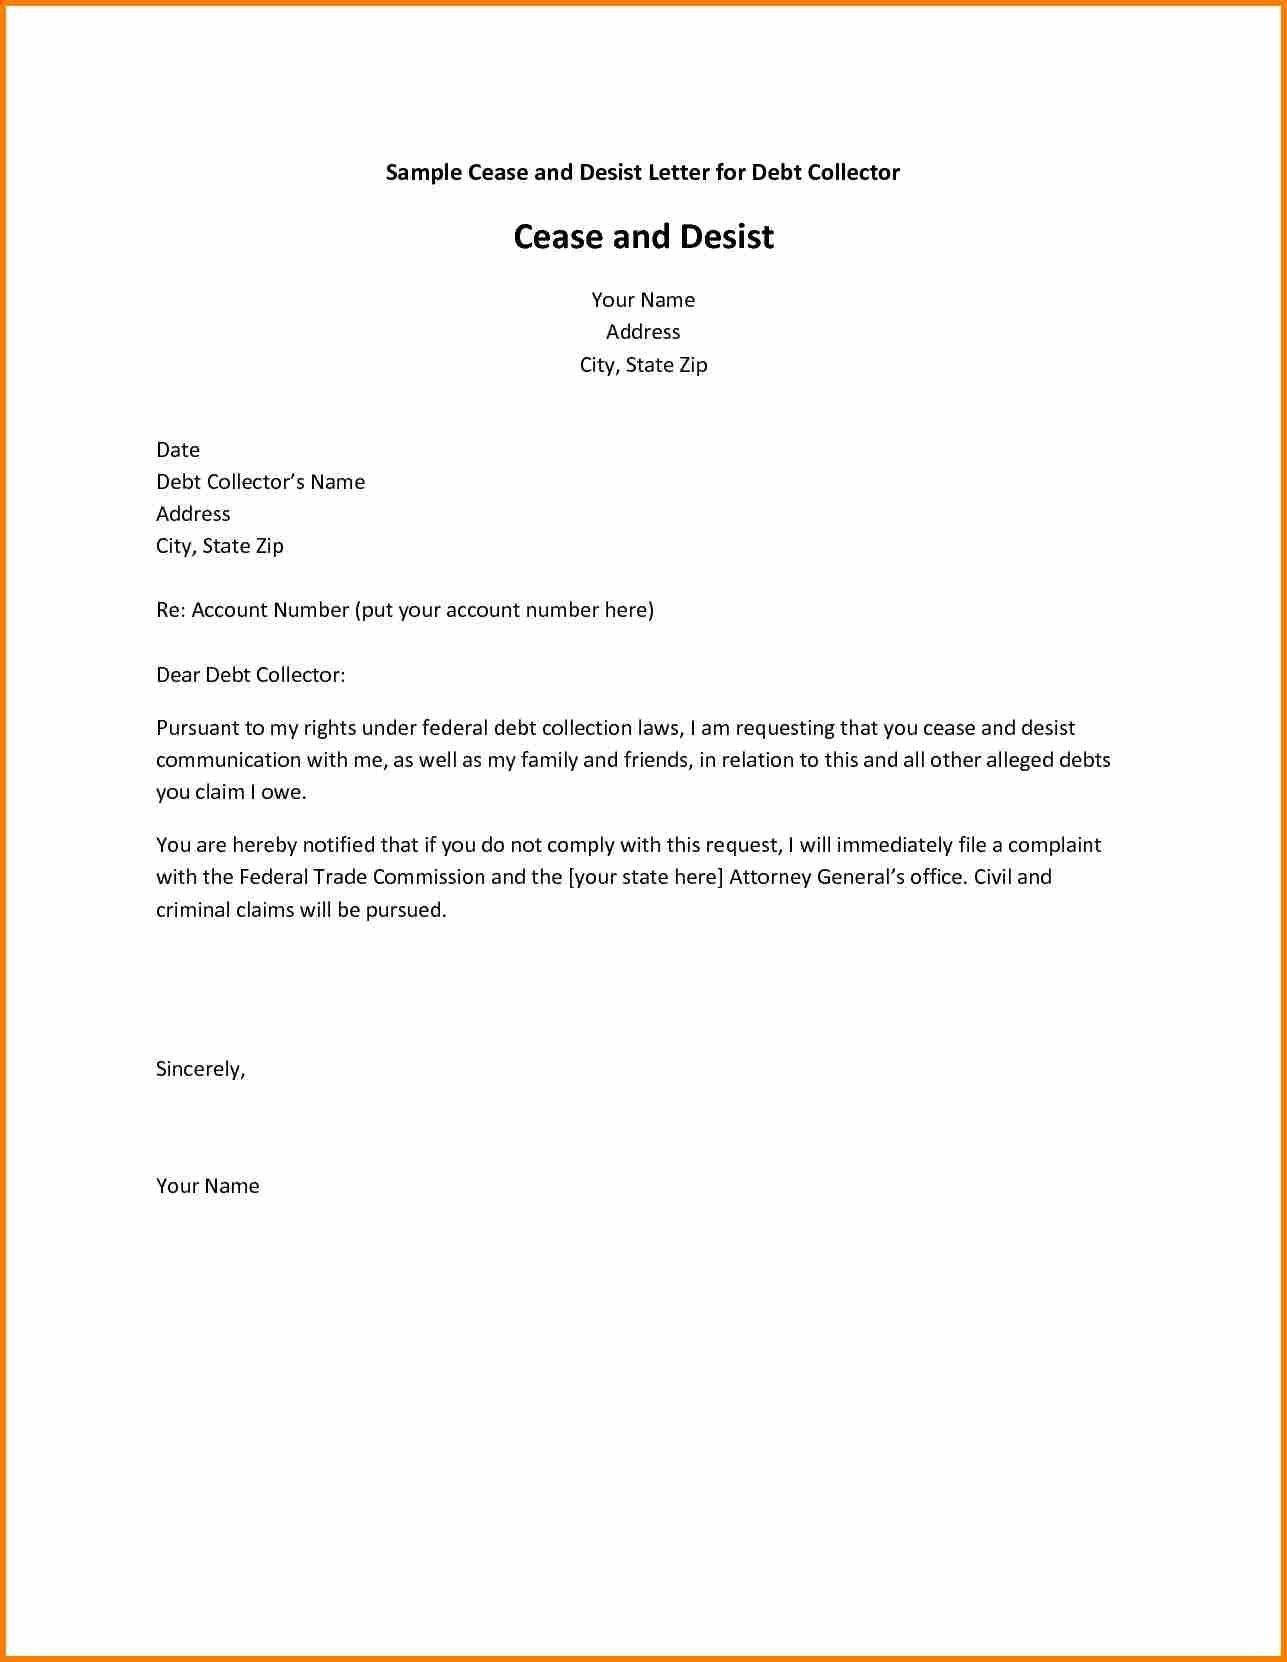 Cease and Desist Letter Template for Debt Collectors - Debt Collection Letter Sample Inspirational Debt Collection Cease